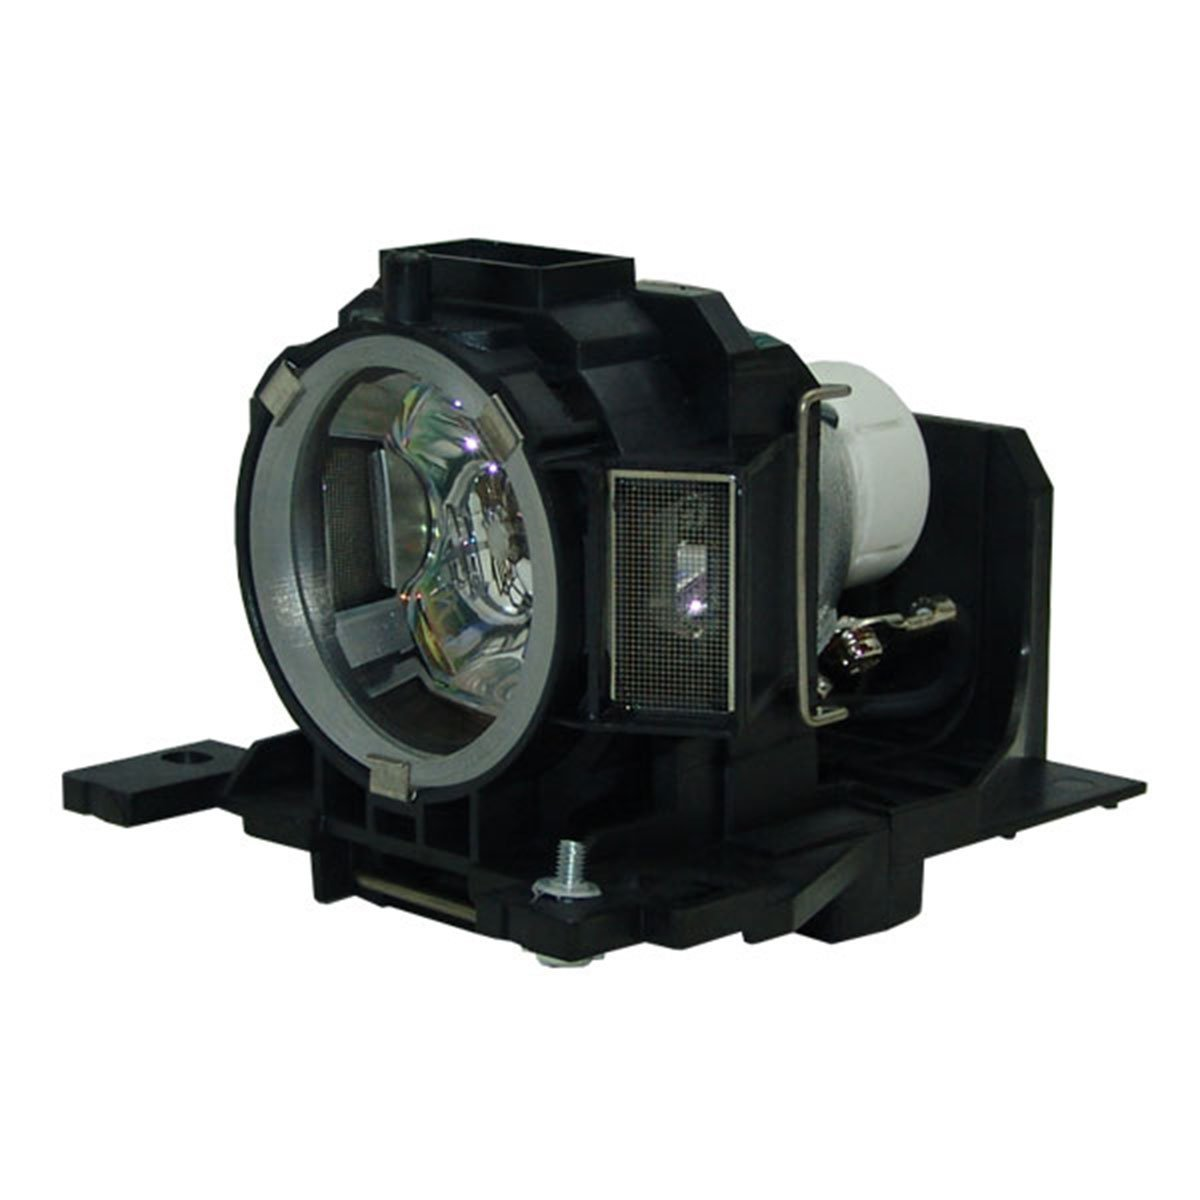 Projector Lamp Bulb DT00891 DT-00891 for HITACHI CP-A100 CP-A100J CP-A101 ED-A100 ED-A100J ED-A110 ED-A110J HCP-A8 With Housing compatible projector lamp for hitachi dt01151 cp rx79 cp rx82 cp rx93 ed x26